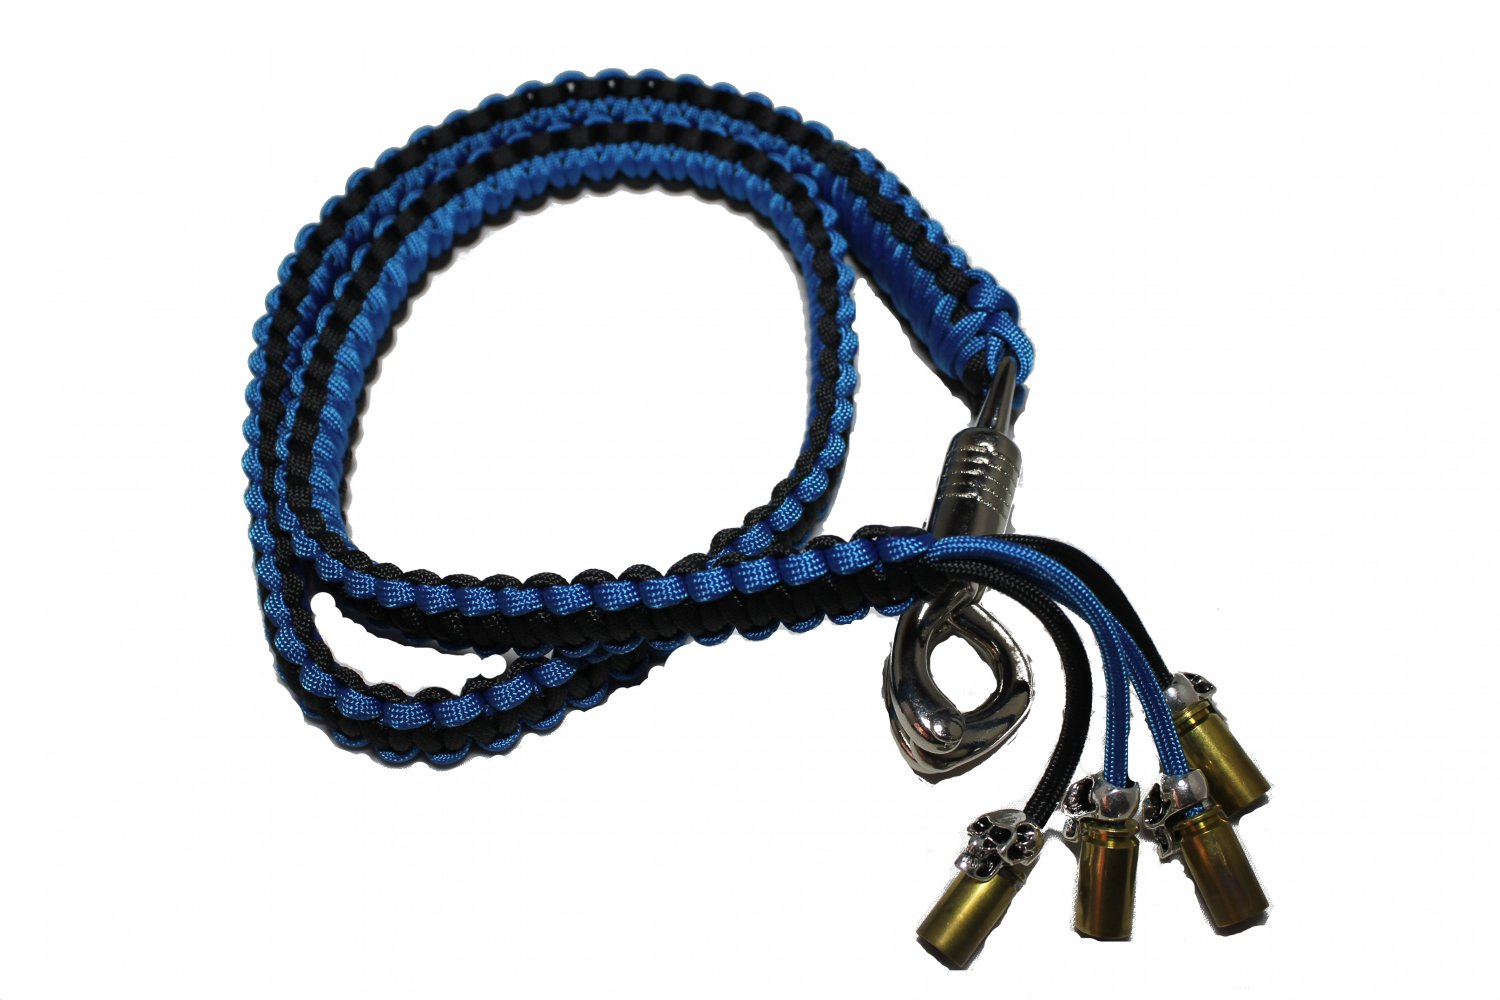 biker whip black and blue